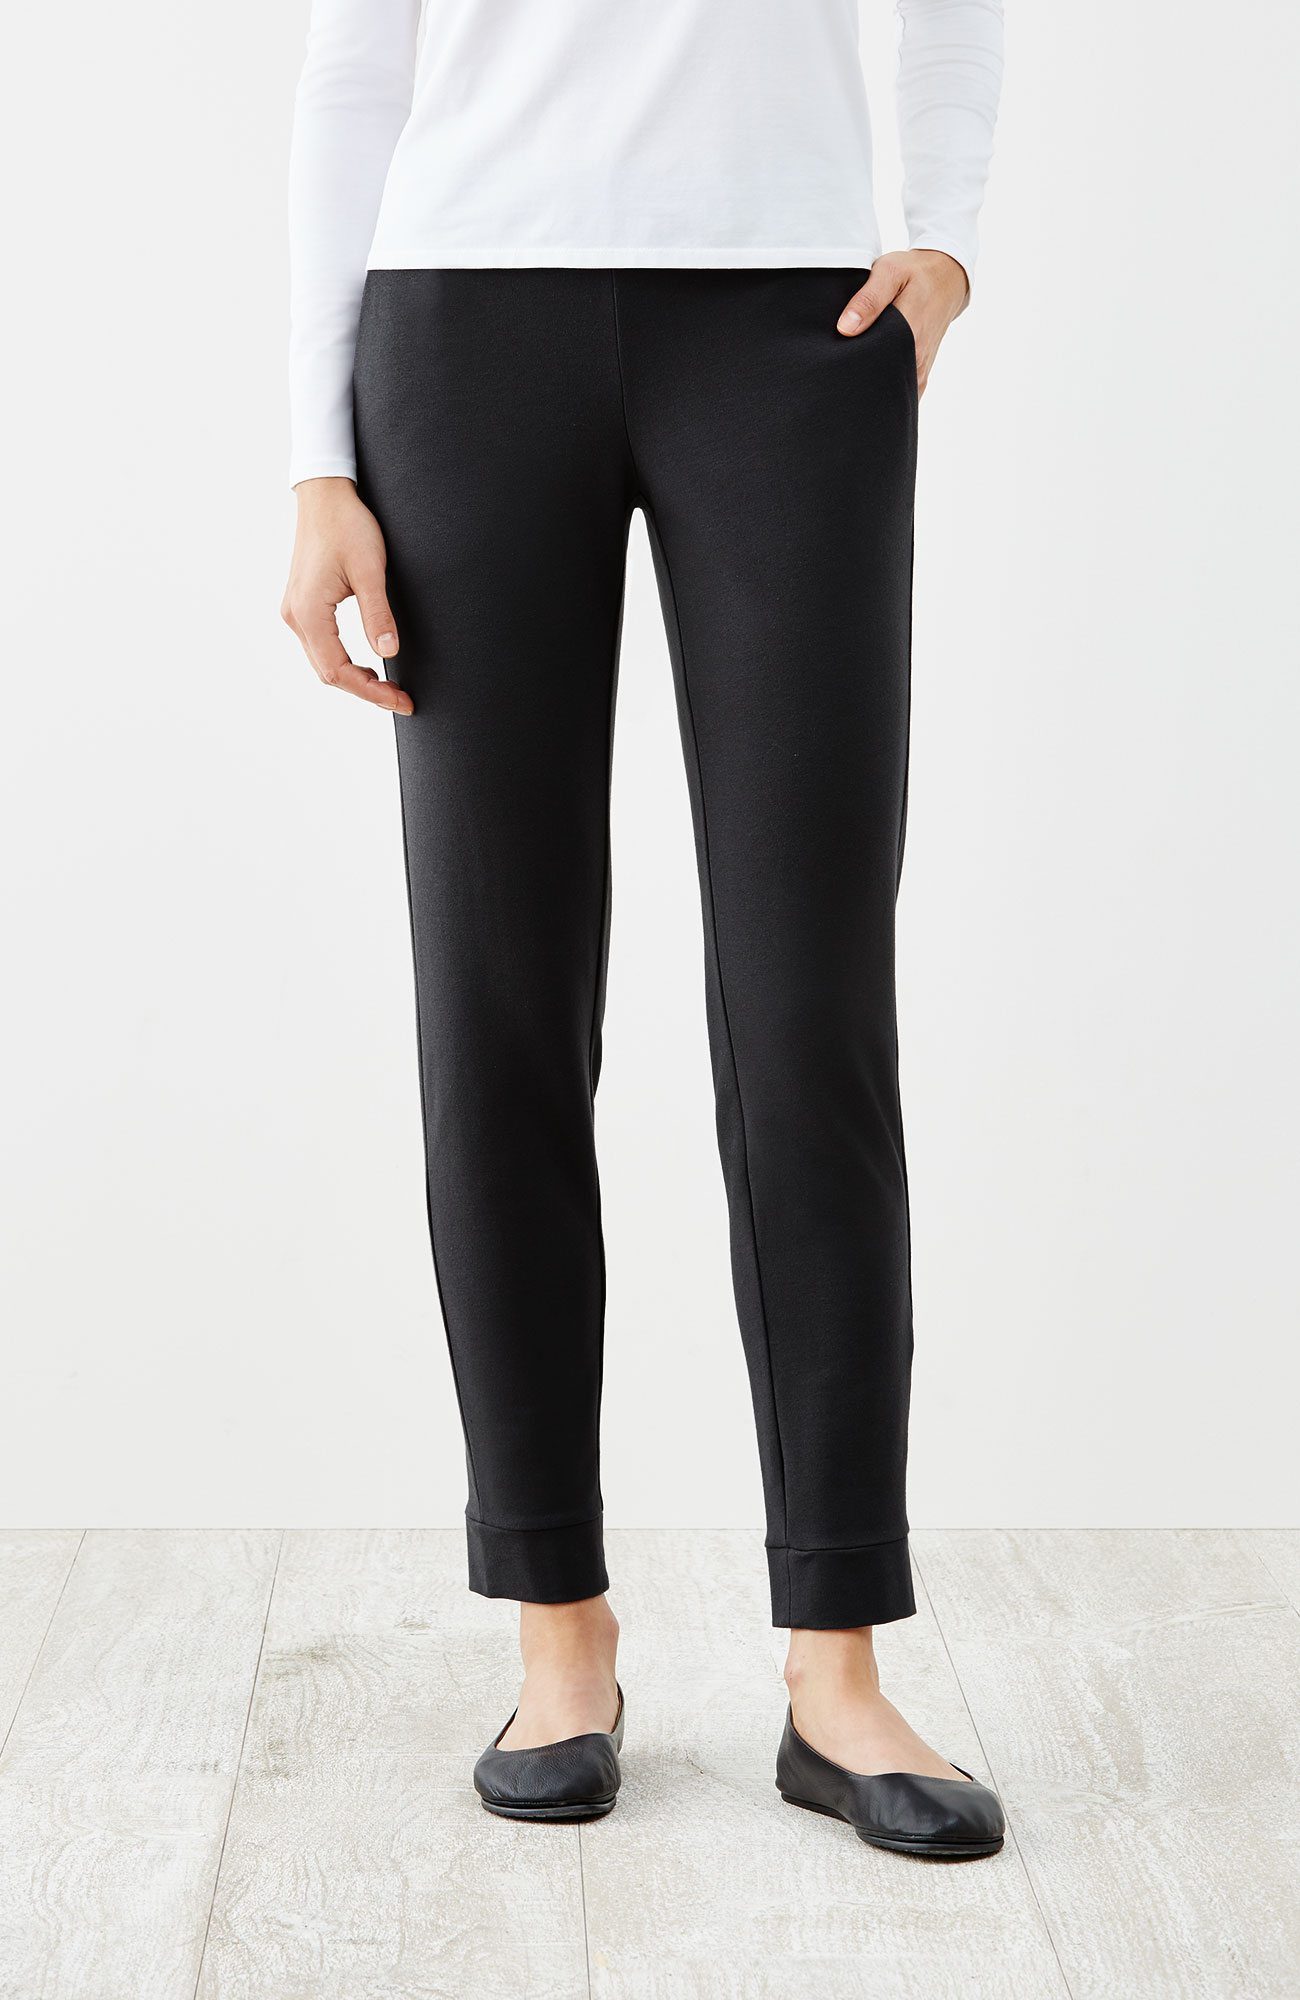 Pure Jill studio pants